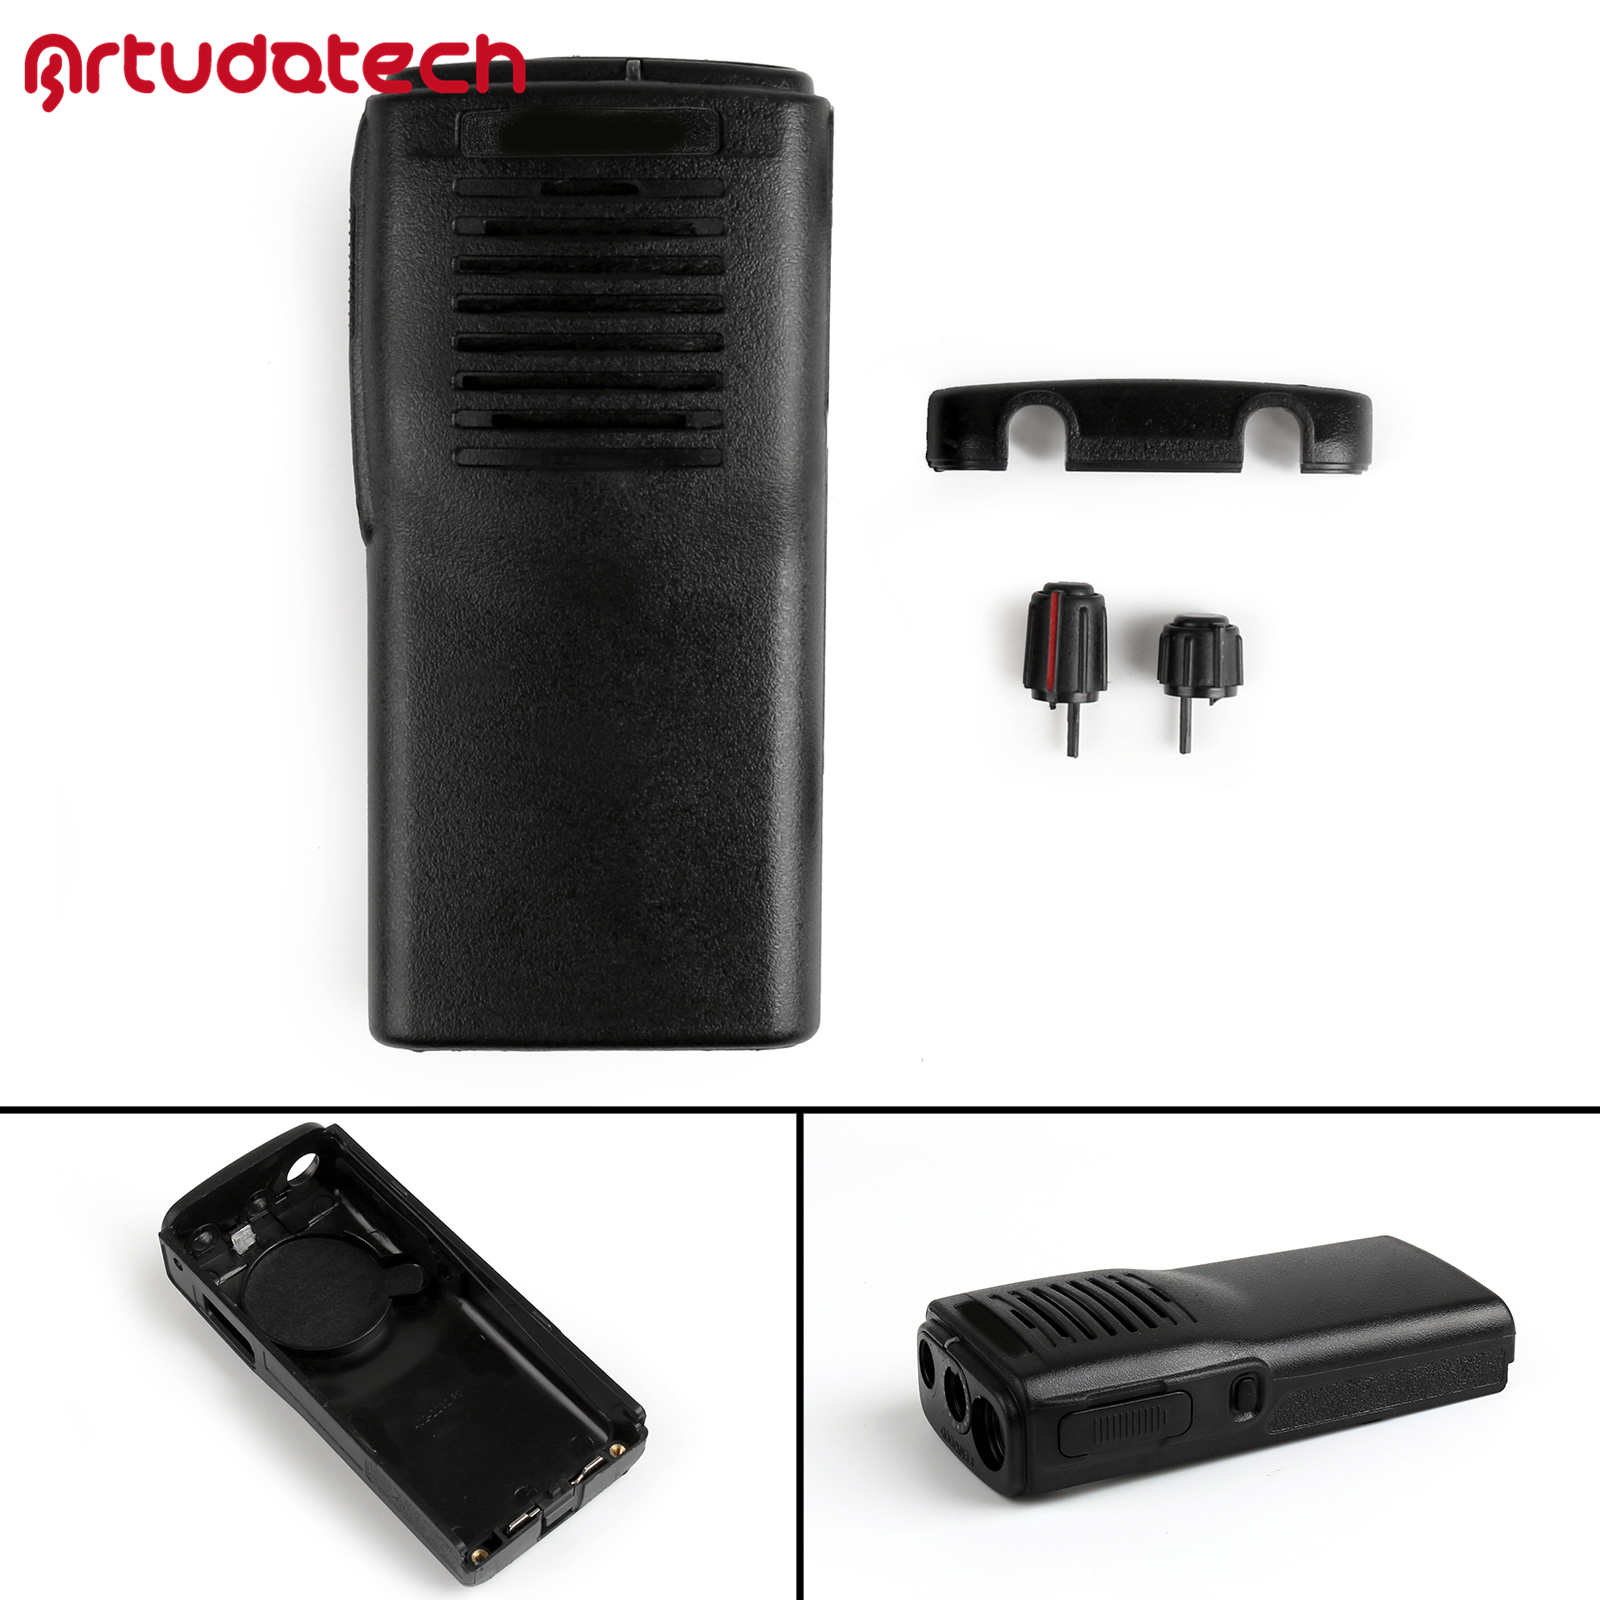 Artudatech Front Outer Case Housing Cover Shell For Kenwood TK3107 TK2107 TK 3107 2107 Talkie Radio Tk-3107